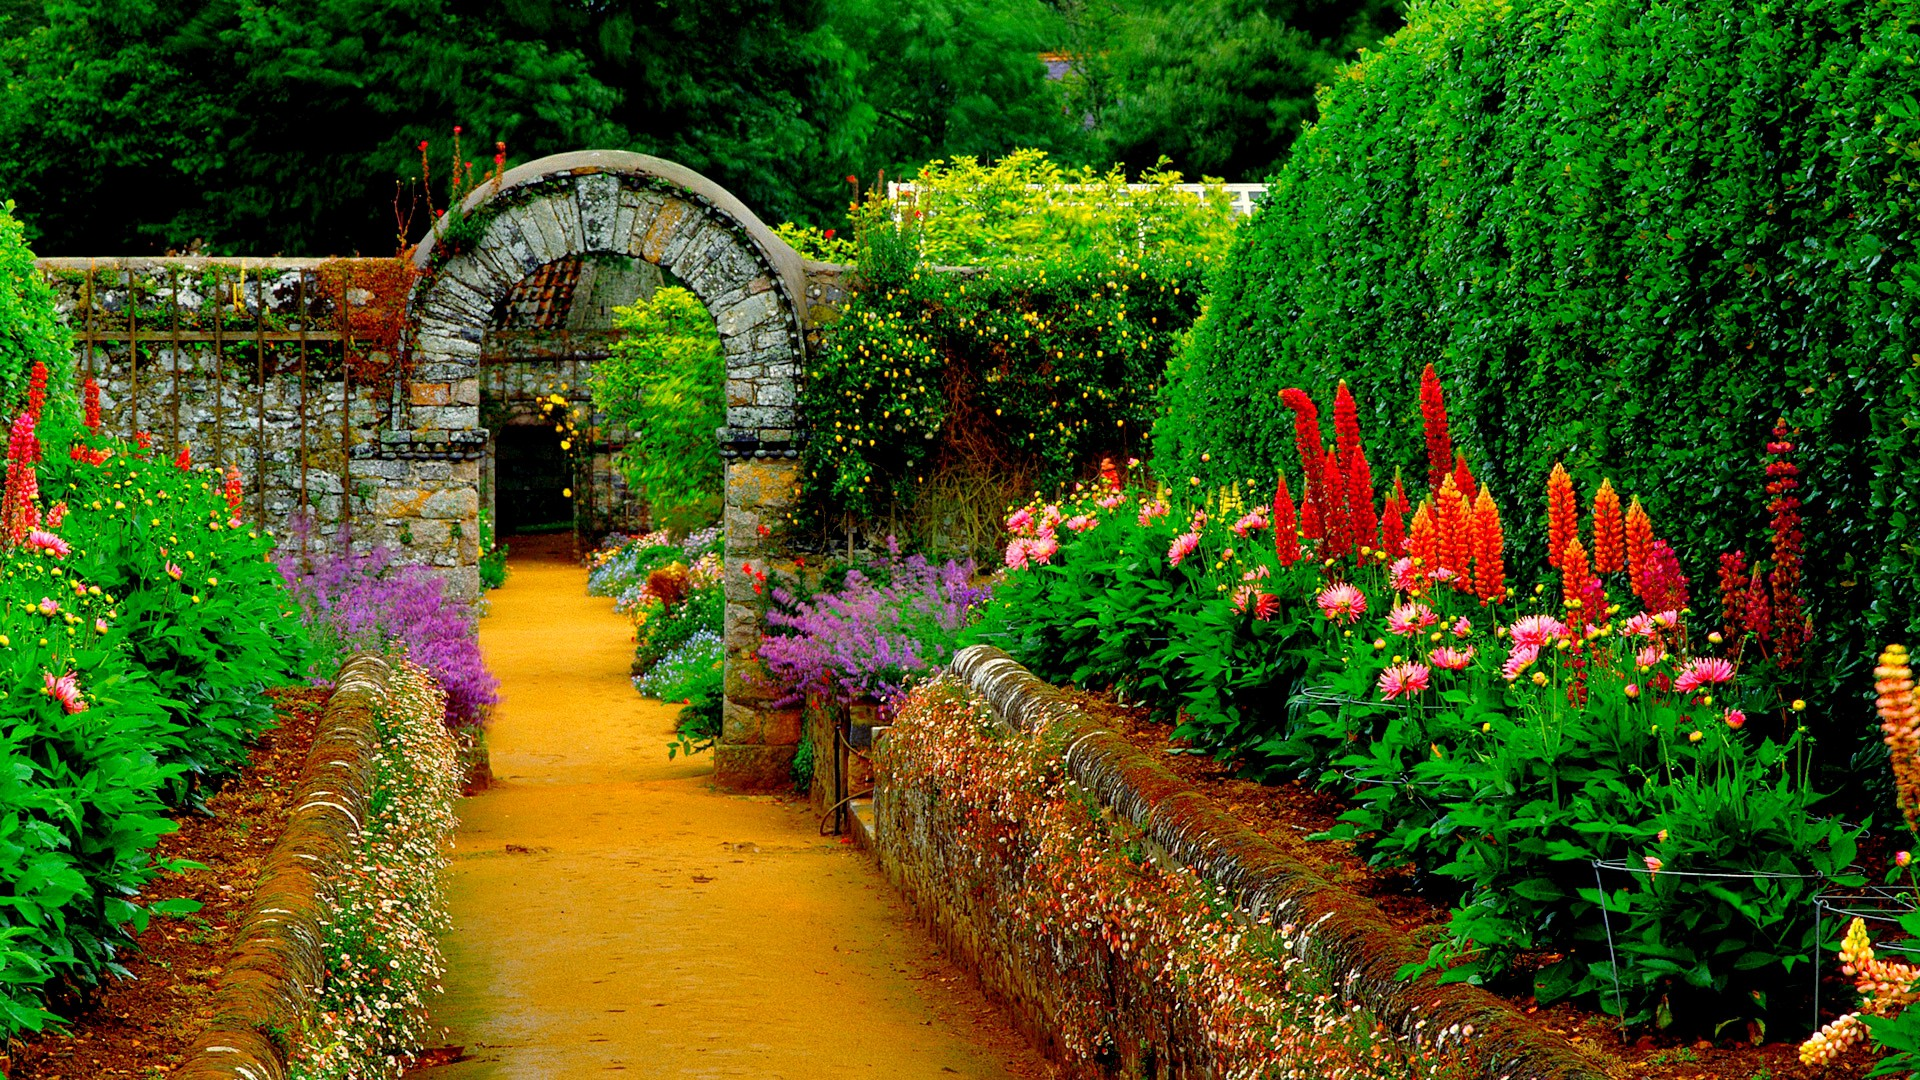 Hd wallpaper garden - Hd Wallpaper Garden 18